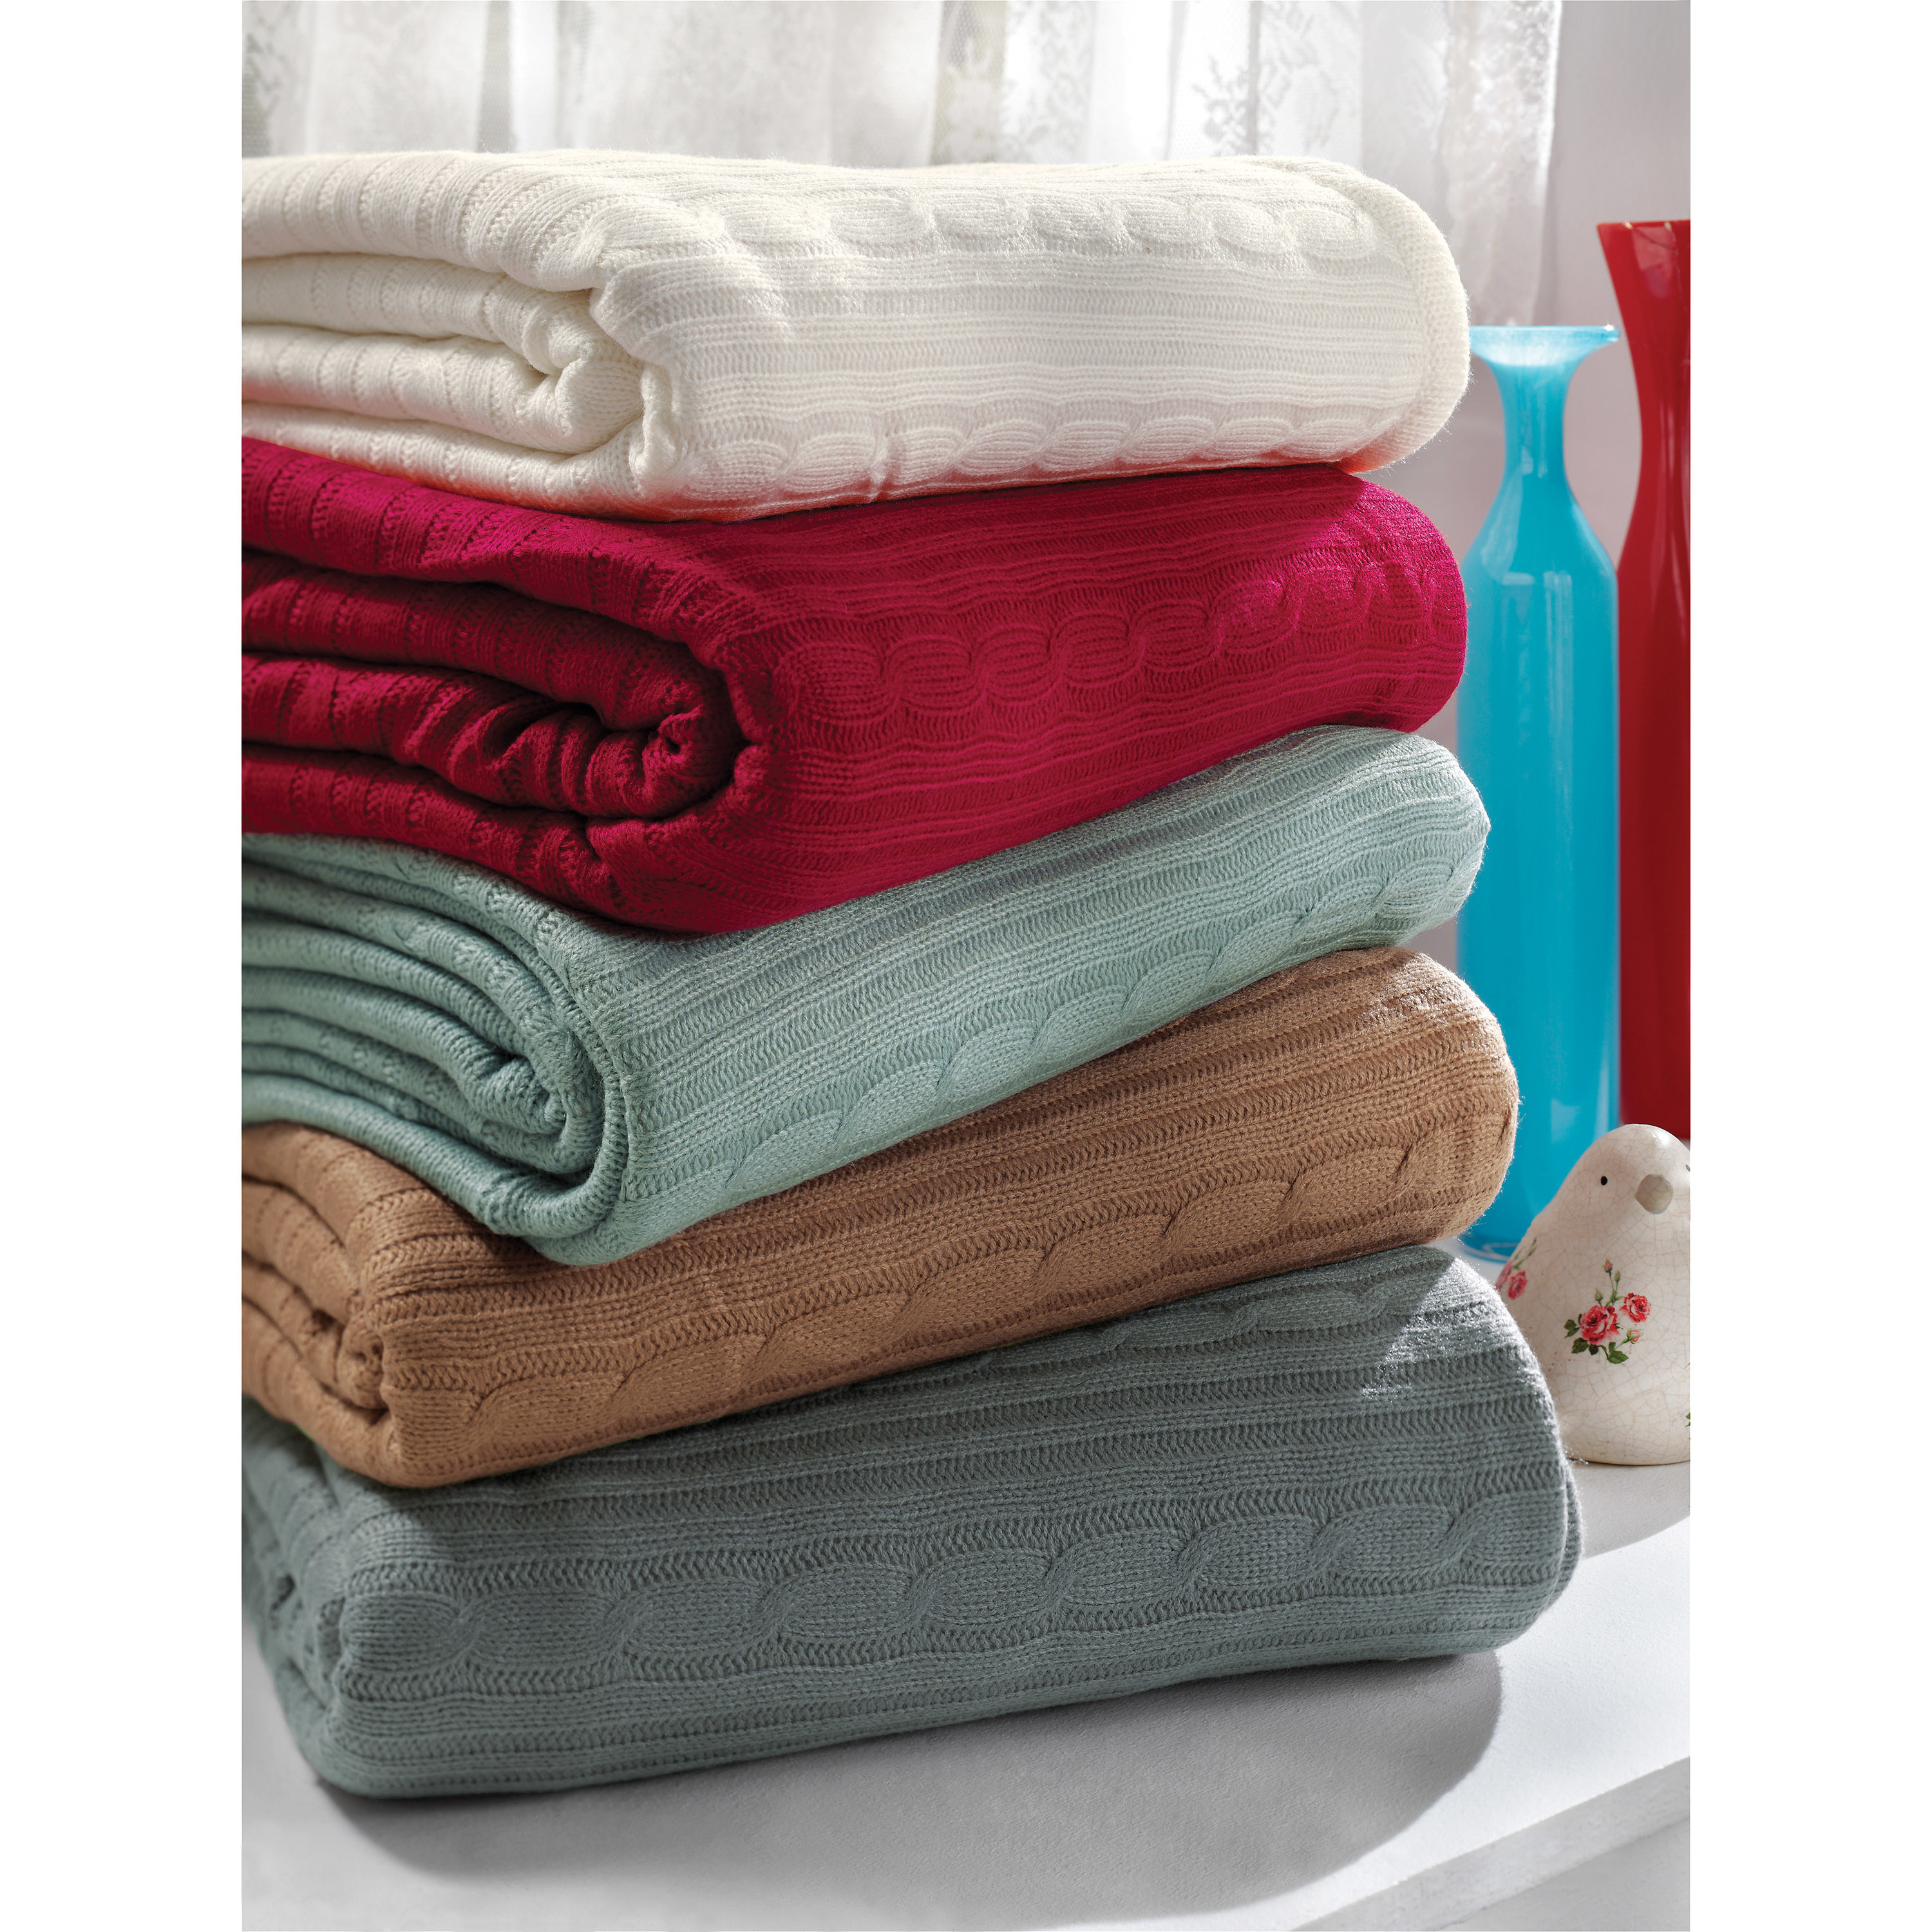 Unique Brielle Cozy Cable Knit Throw Blanket & Reviews Cable Blanket Of Contemporary 40 Ideas Cable Blanket